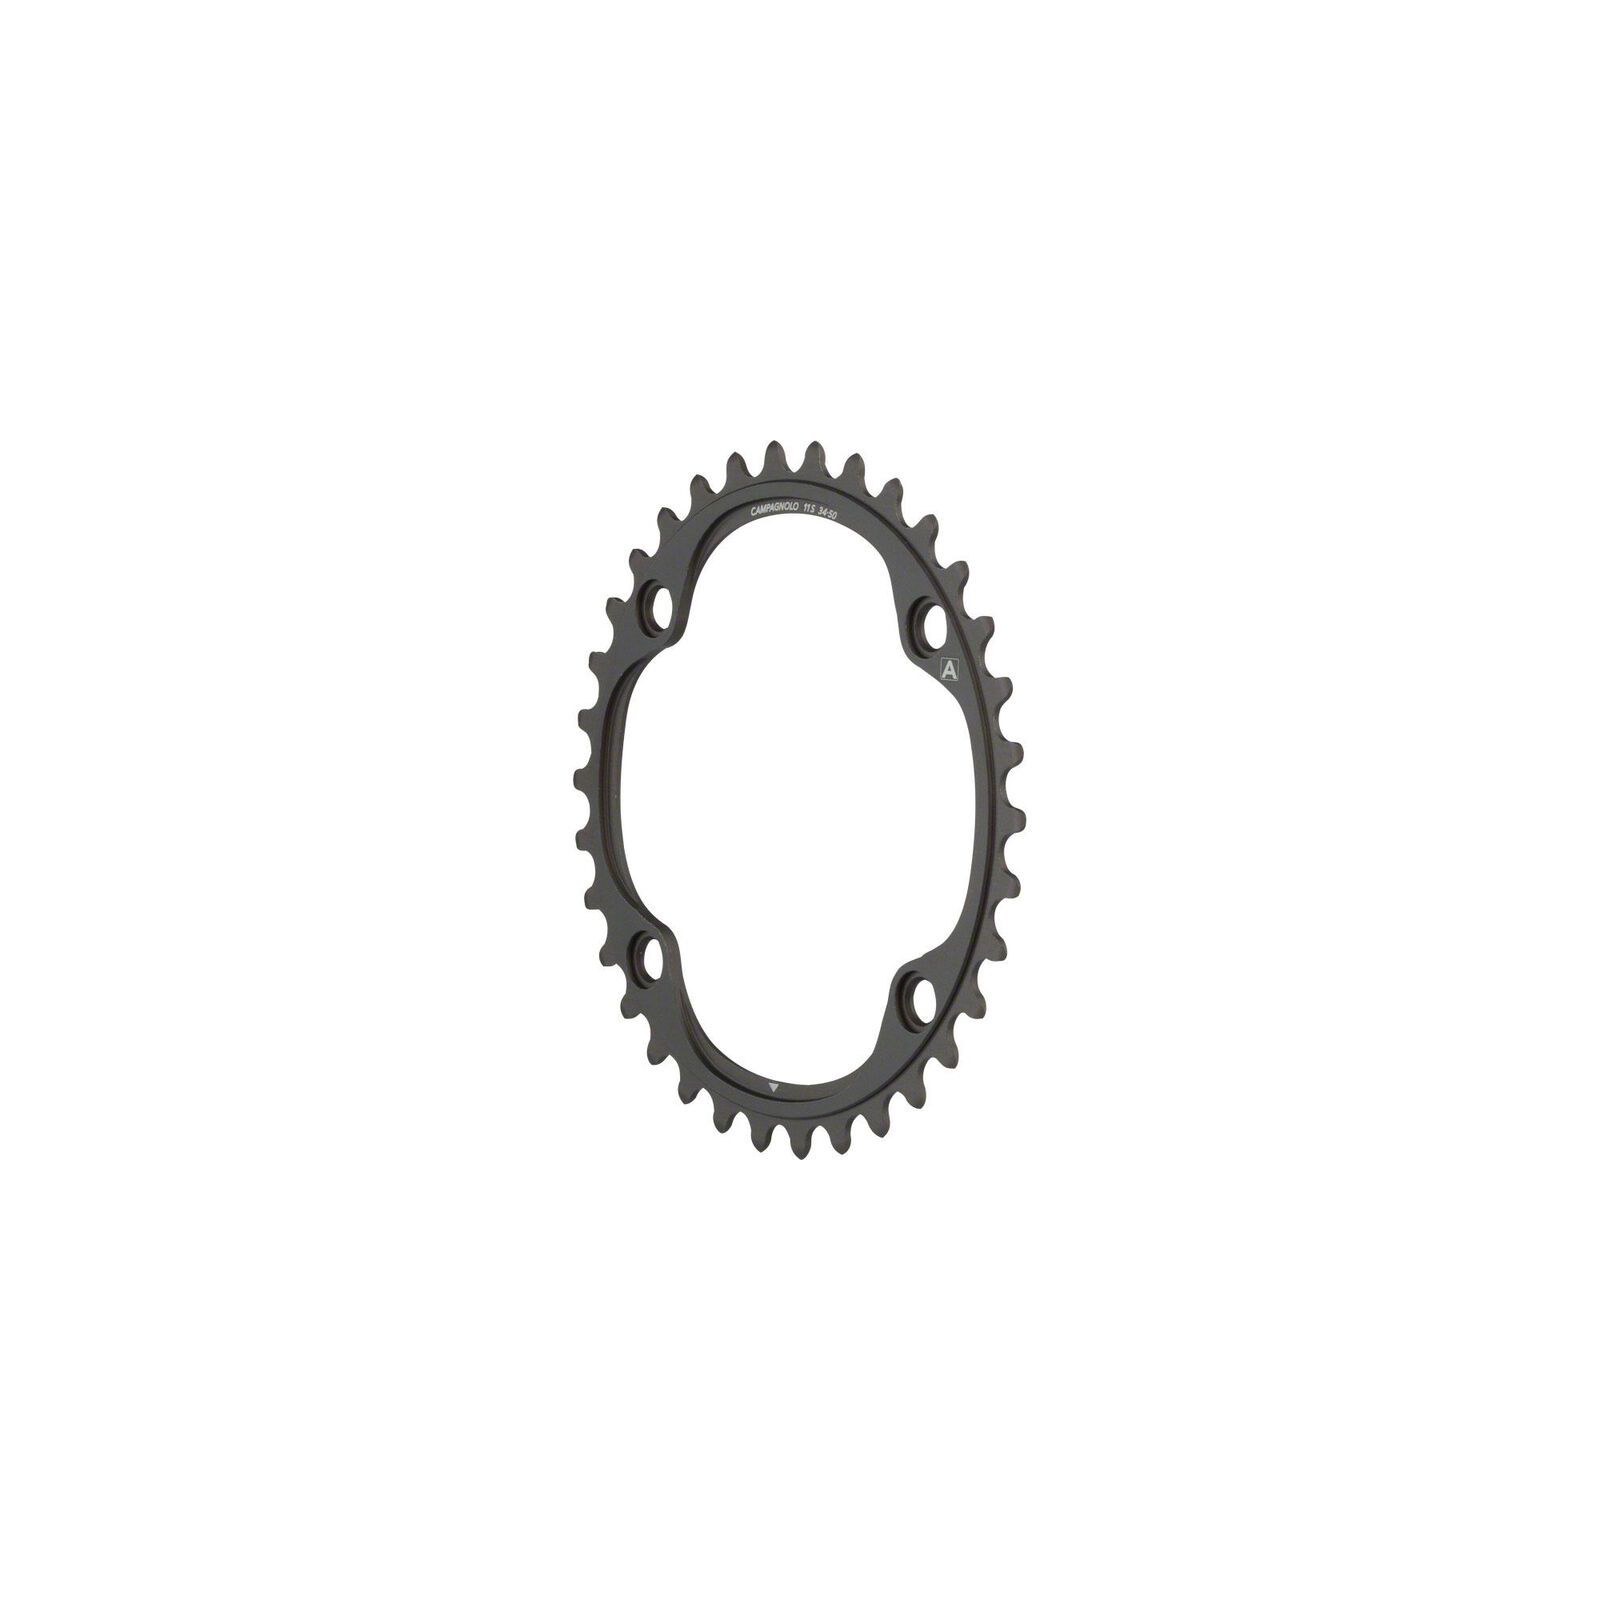 Campagnolo  11-S 39T Chainring & Bolts 2015+ Super Record Record Chorus  up to 50% off